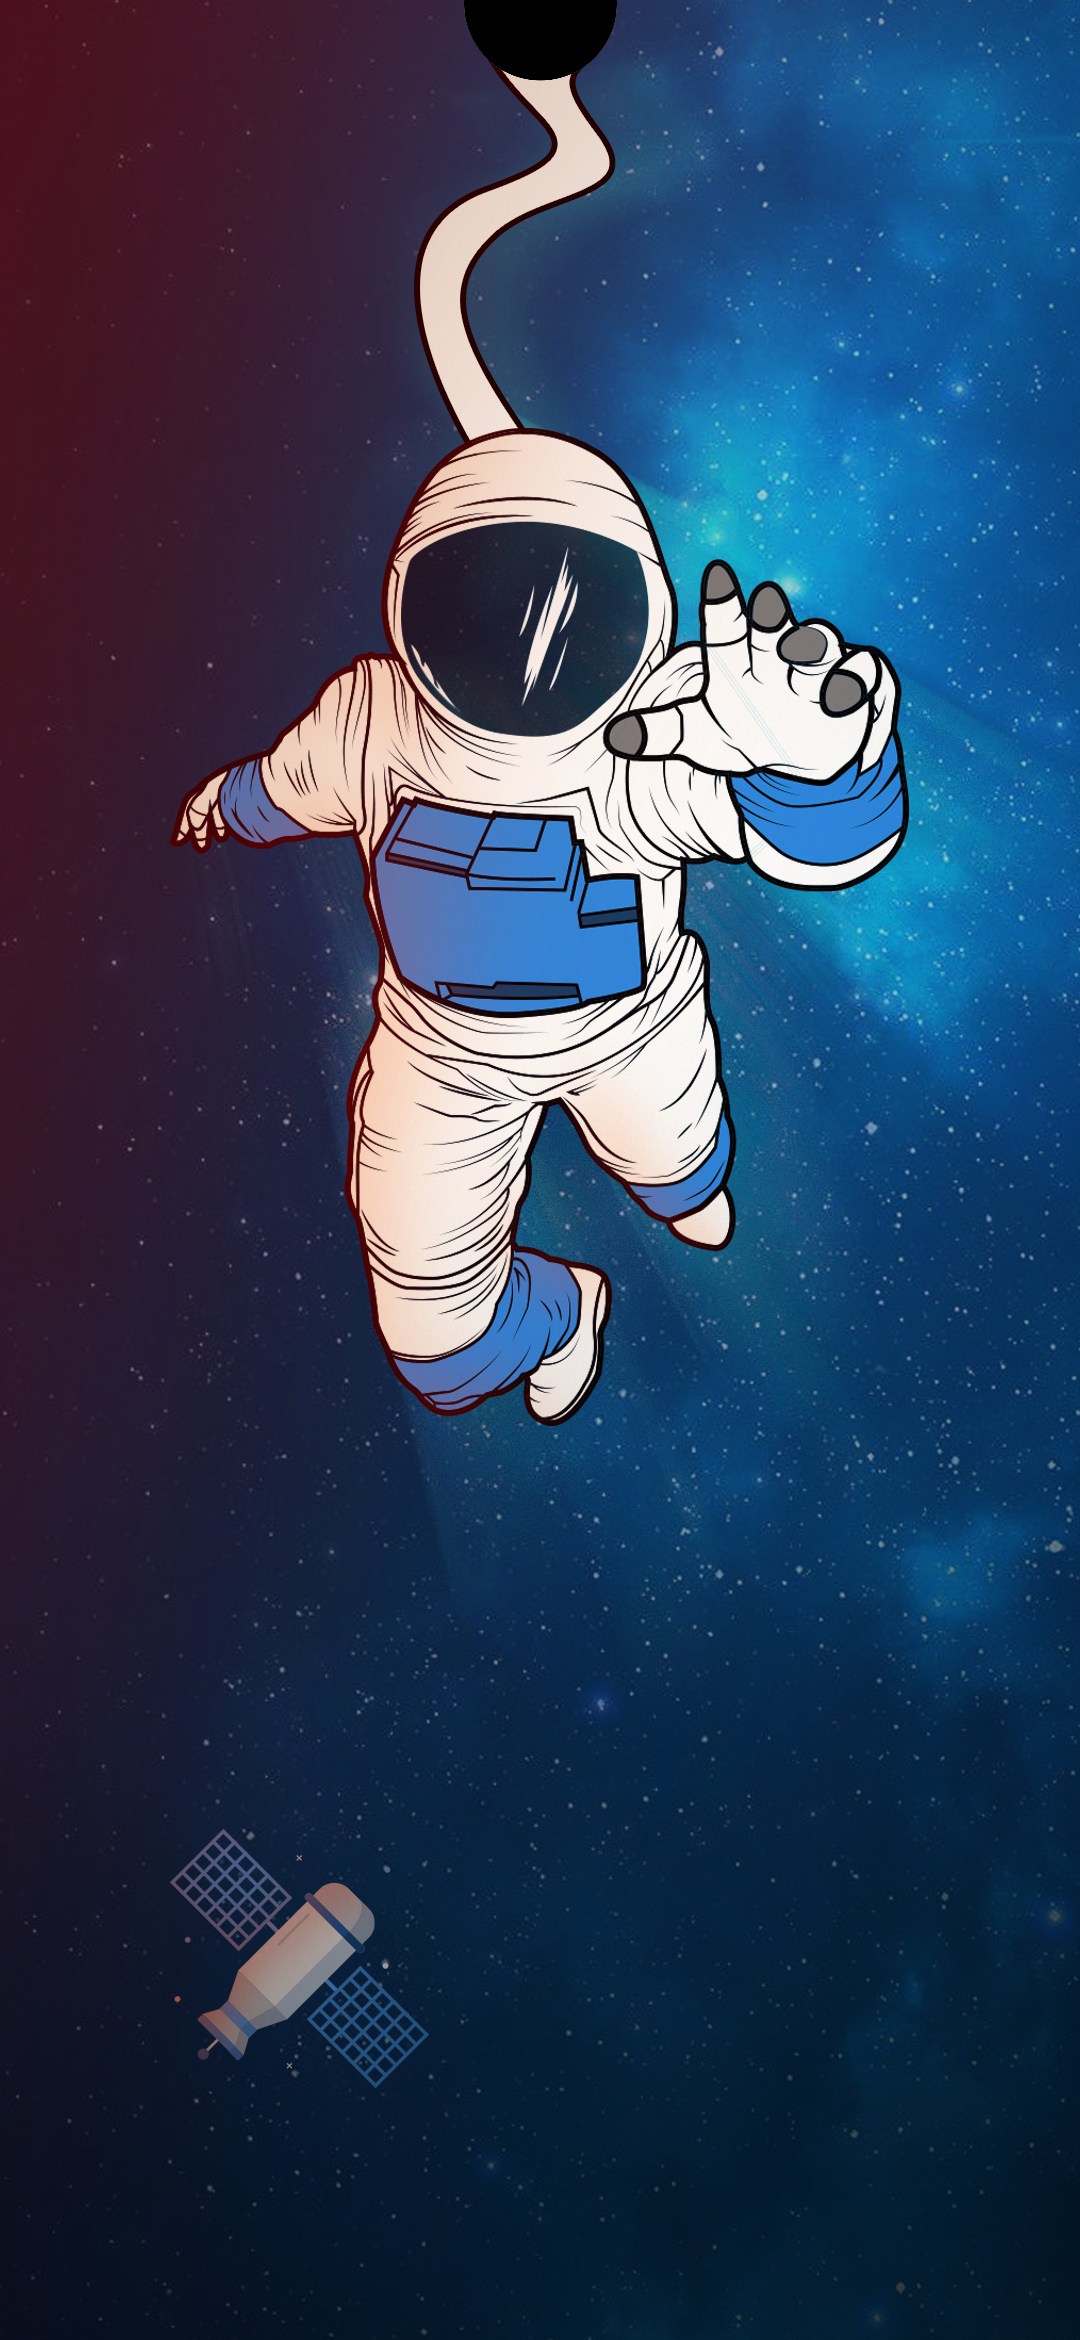 Image by Shr Ash on notch wallpapers hd Astronaut wallpaper